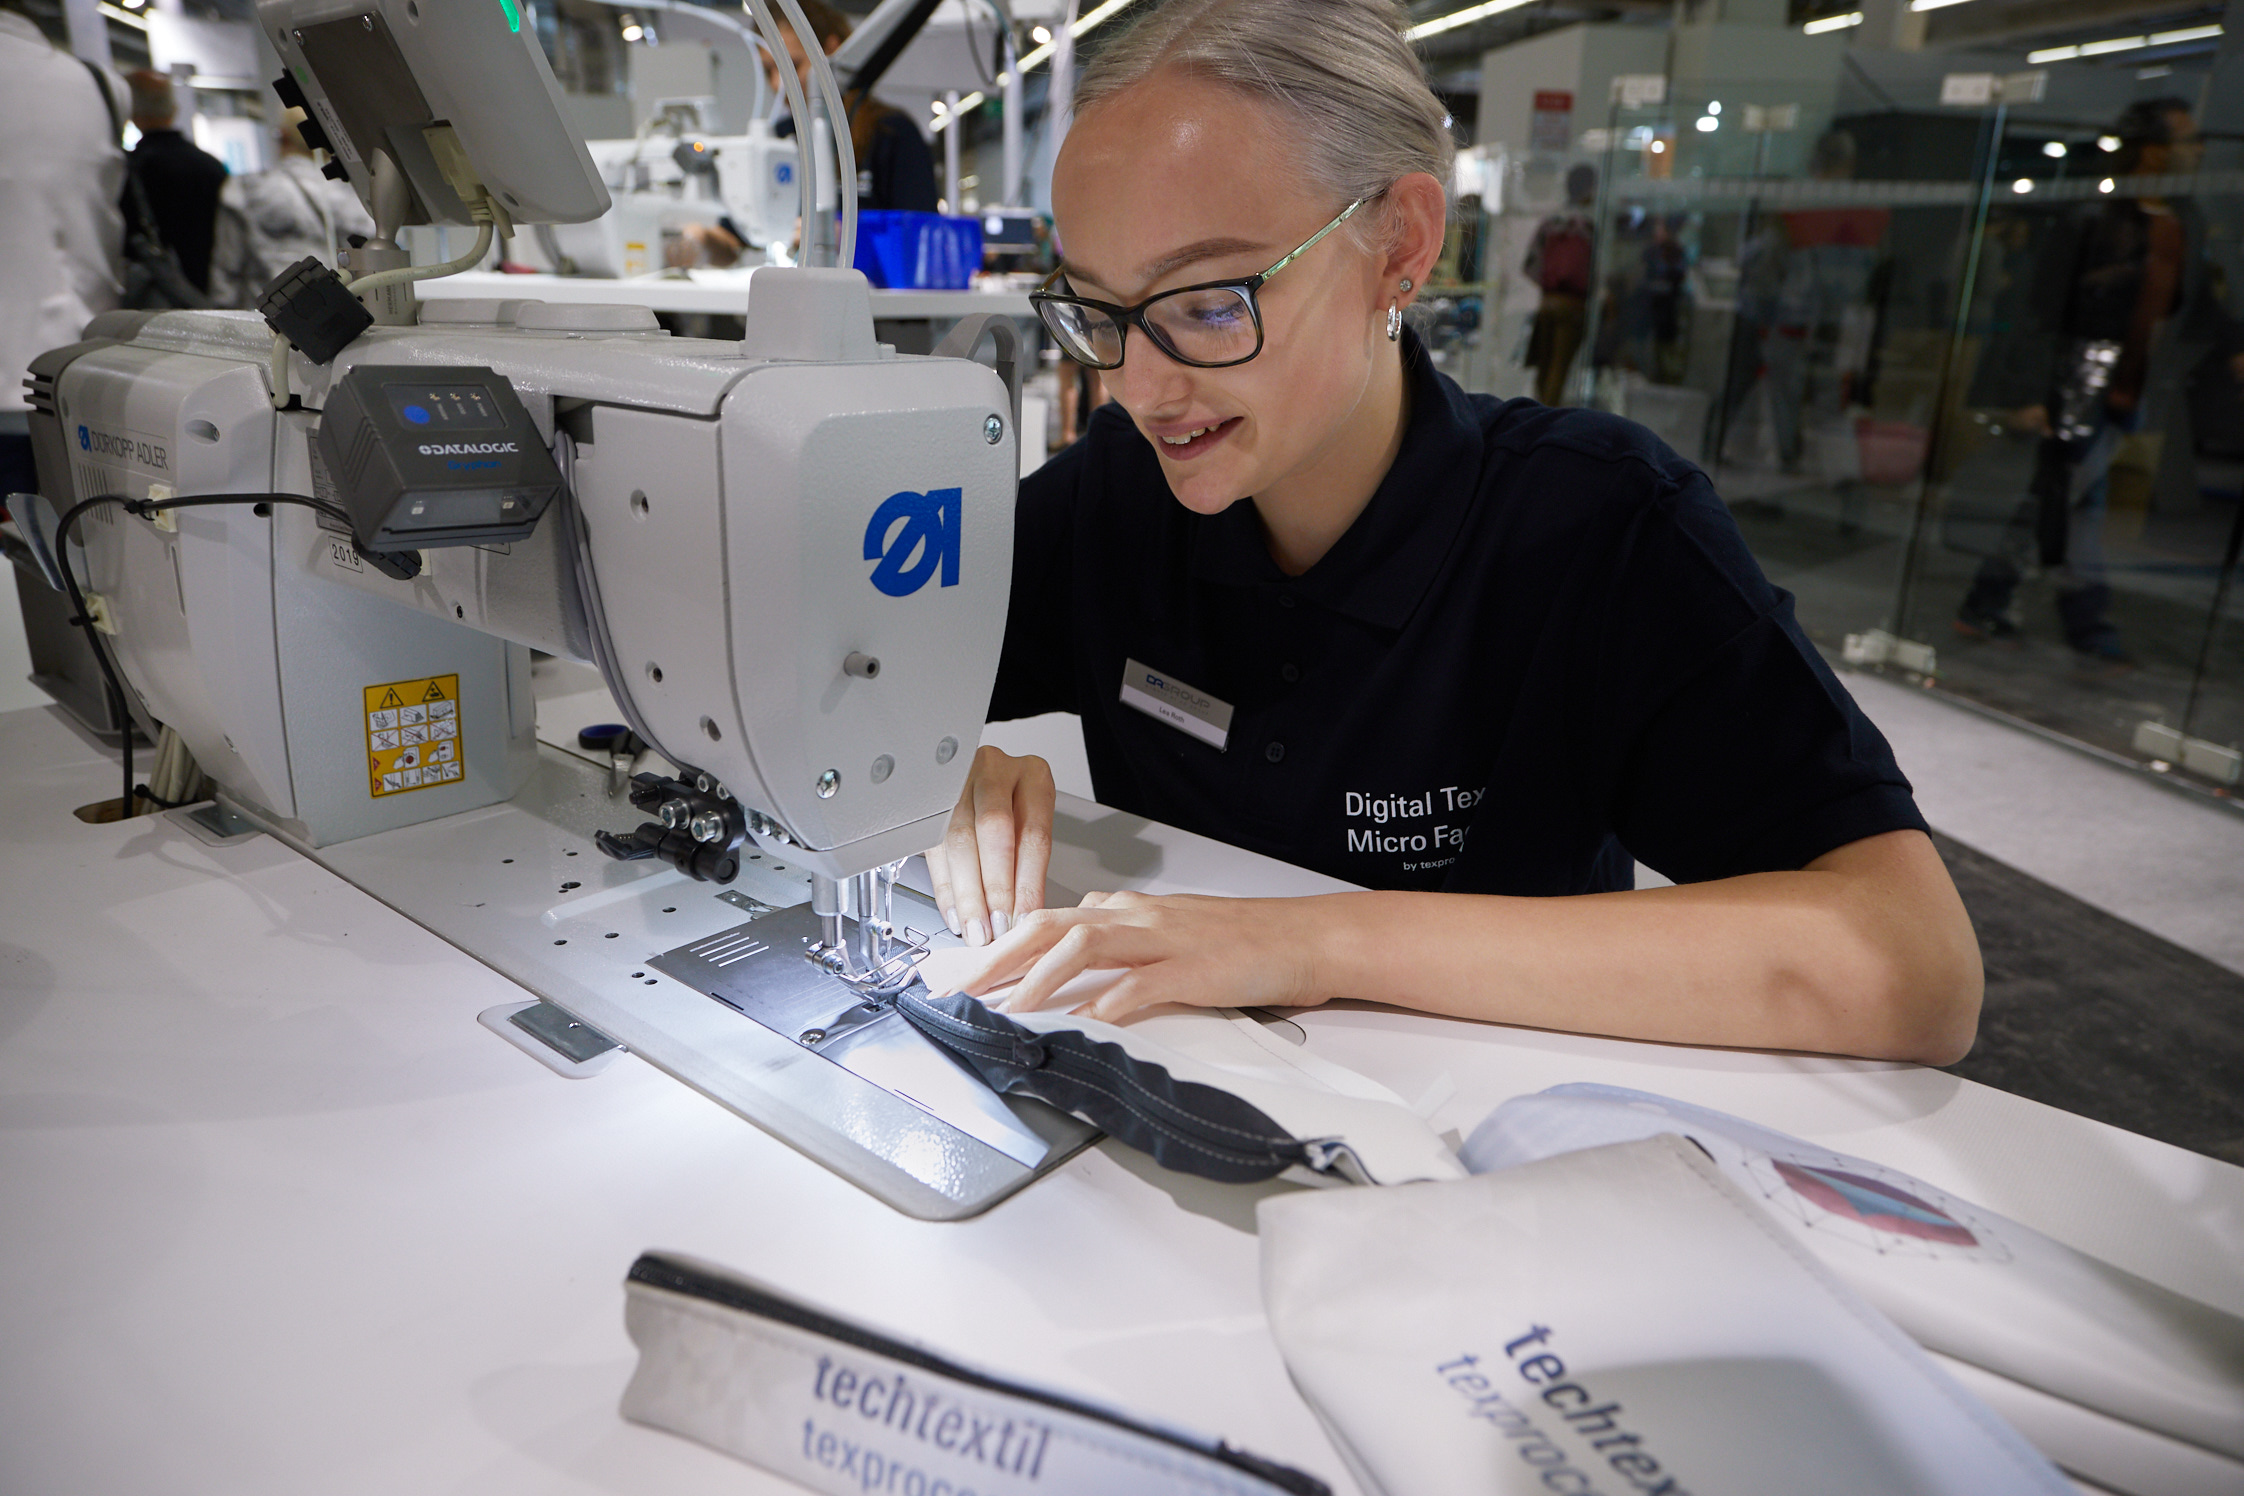 Digital Textil Micro Factory